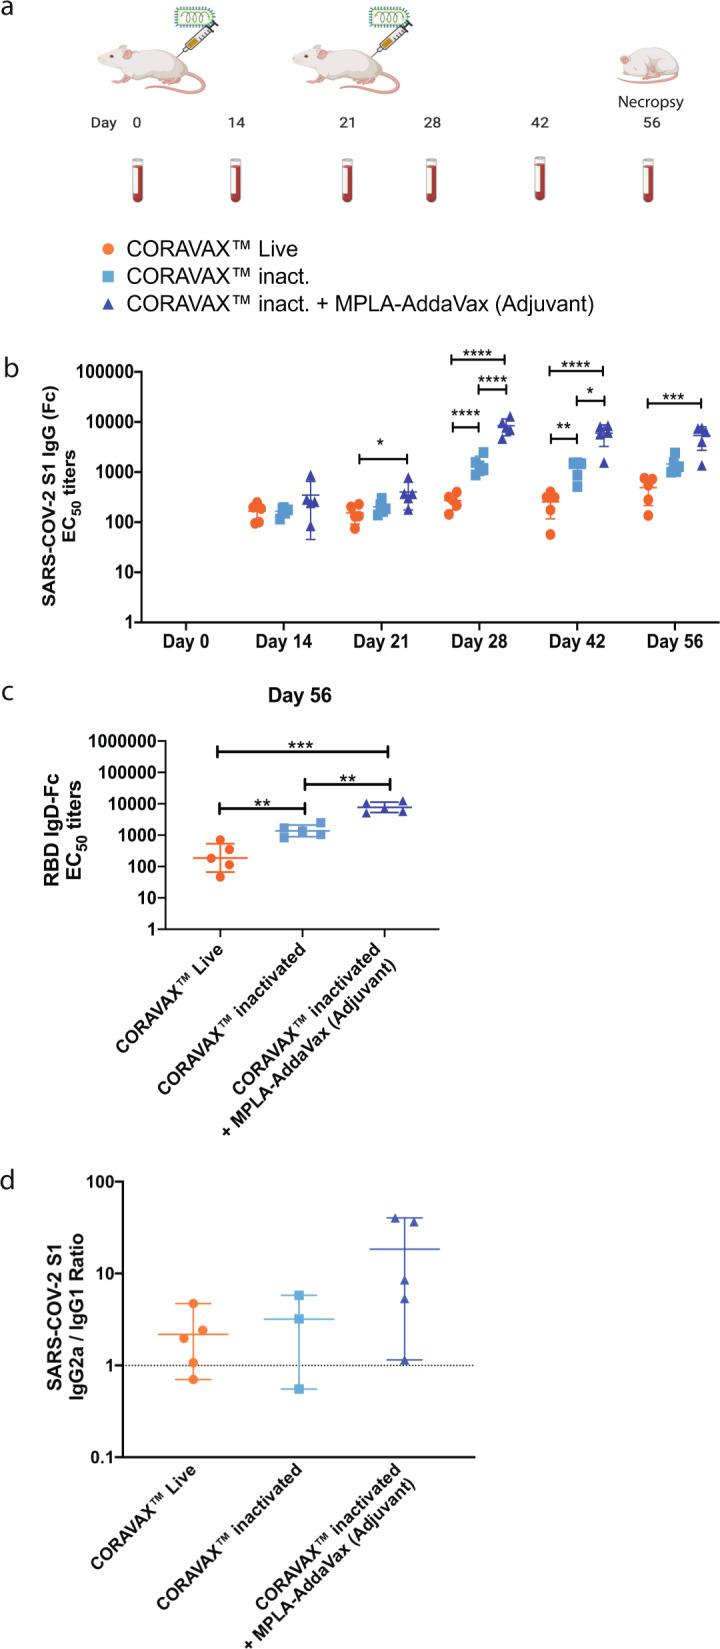 Analysis of the immune response to CORAVAX in mice. Balb/C mice were immunized once with live CORAVAX or twice (days 0 and 21) with 10 μg chemically inactivated particles of CORAVAX with or without adjuvant. Serum was collected from each mouse at days 14, 21, 28, 42, and 56 for analysis by a SARS-CoV-2 S-specific ELISA. a Immunization schedule: live CORAVAX used once on day 0; the inactivated vaccines were dosed on days 0 and 28 (figure created with BioRender.com). b SARS CoV-2 S1 <t>IgG</t> responses represented as EC50 titers c SARS CoV-2 RBD IgG responses on day 56 sera d SARS CoV-2 S1 <t>IgG2/1</t> isotype ratio. Two animals in the inactivated CORAVAX group did not make detectable <t>IgG1</t> antibodies.